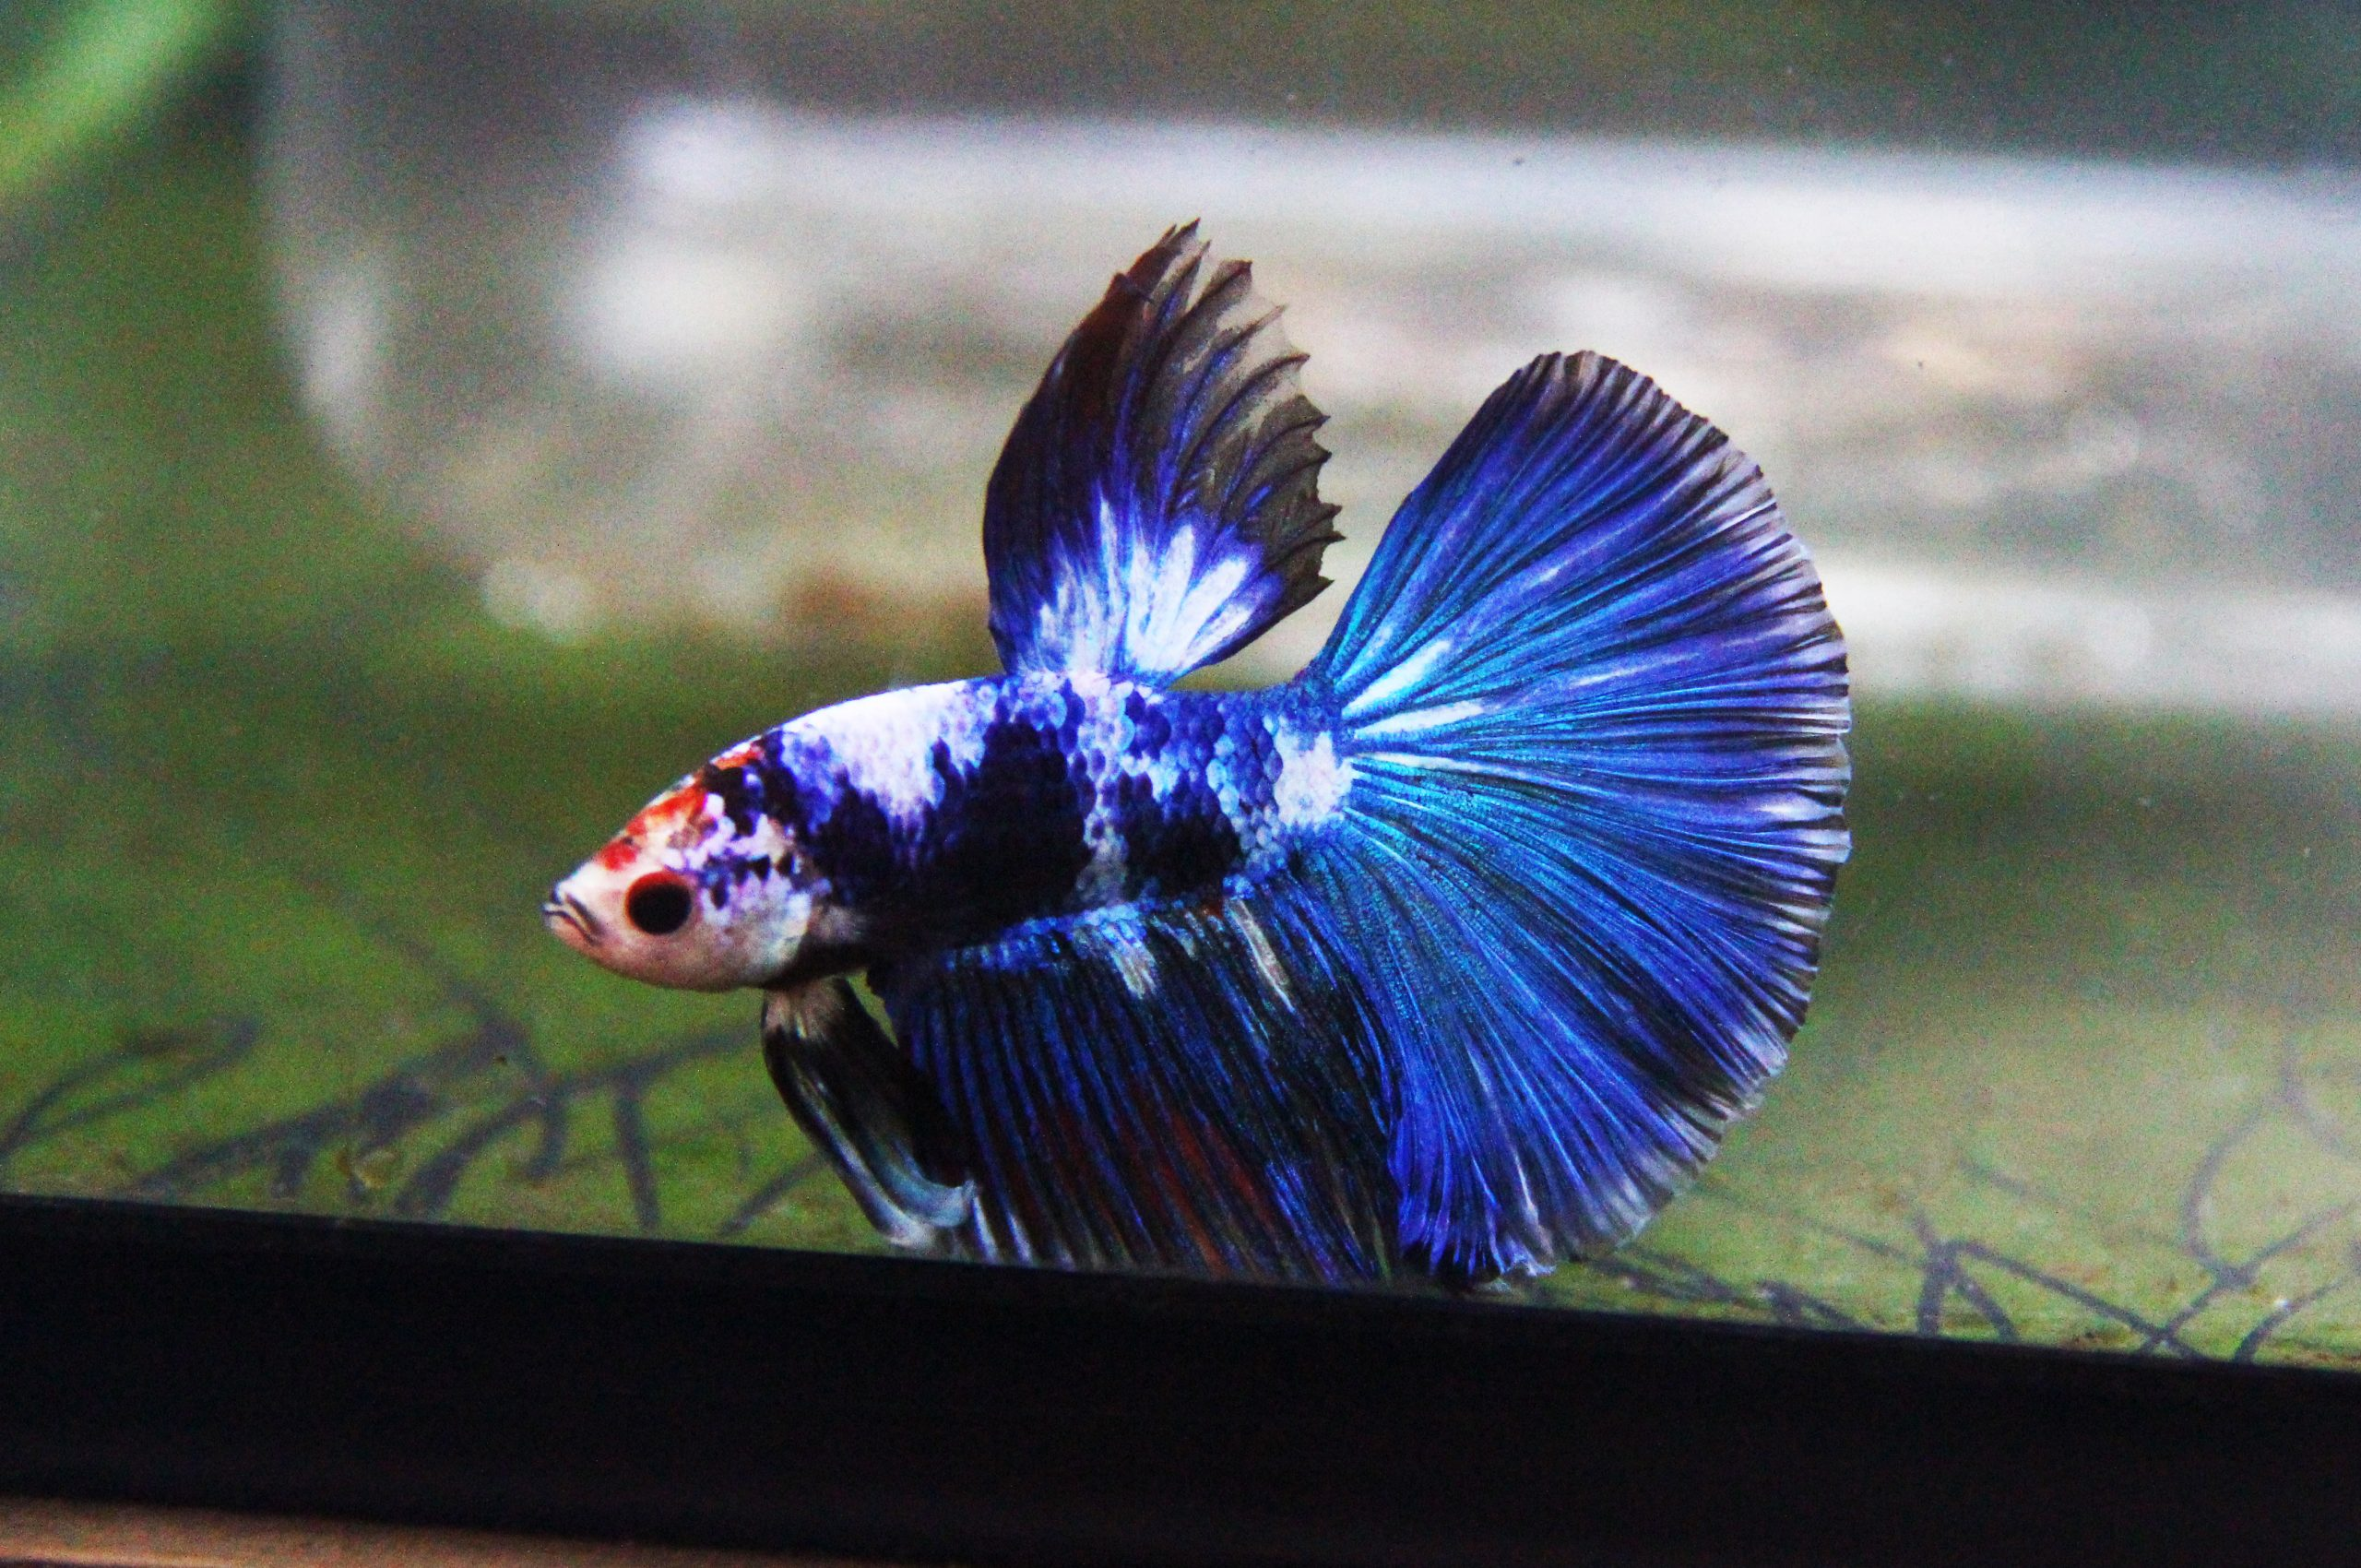 The Blue Marble Halfmoon Betta